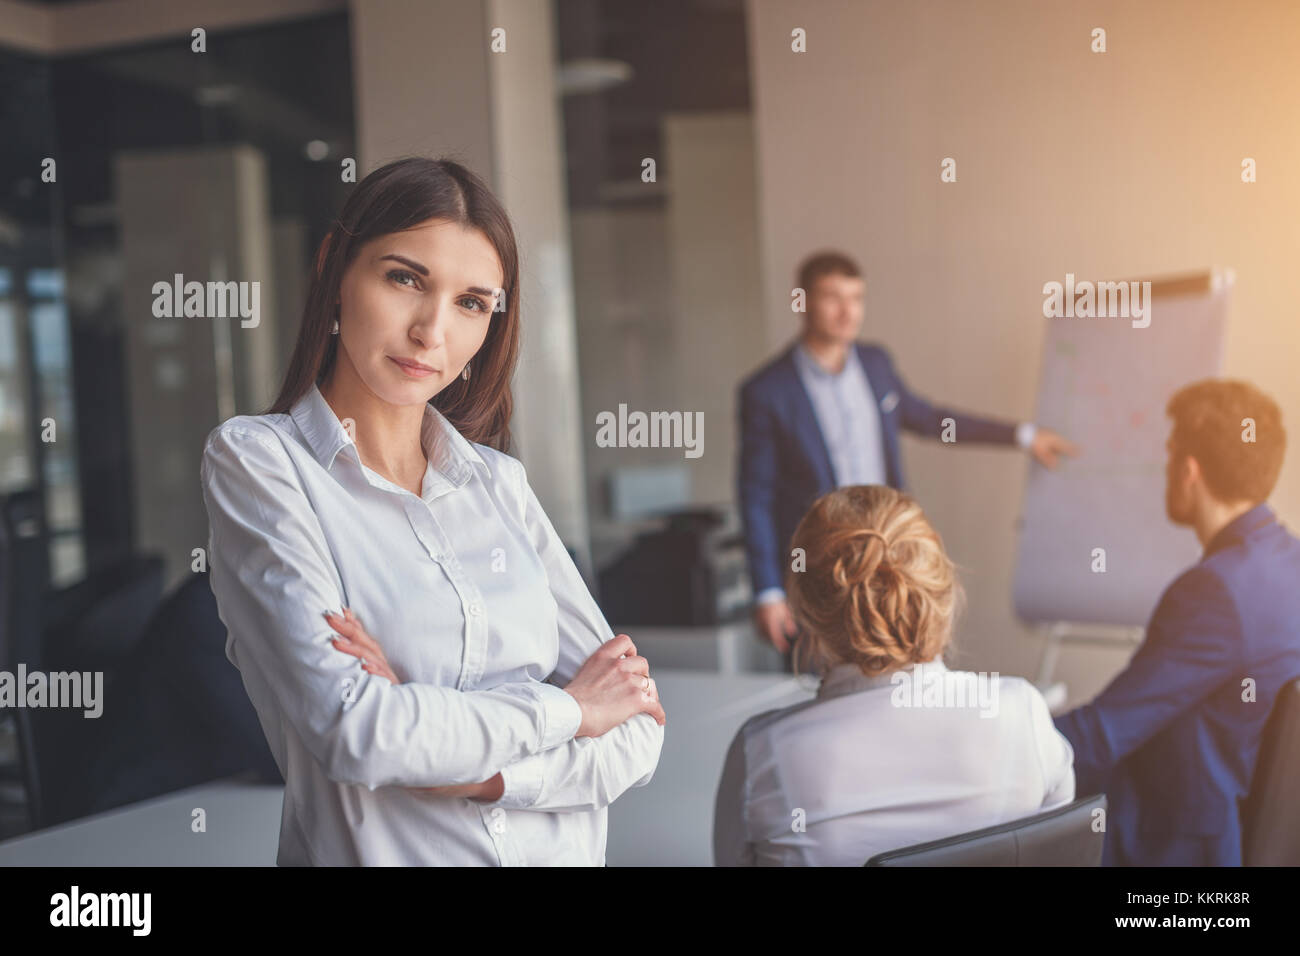 Modern business woman in the office with copy space - Stock Image